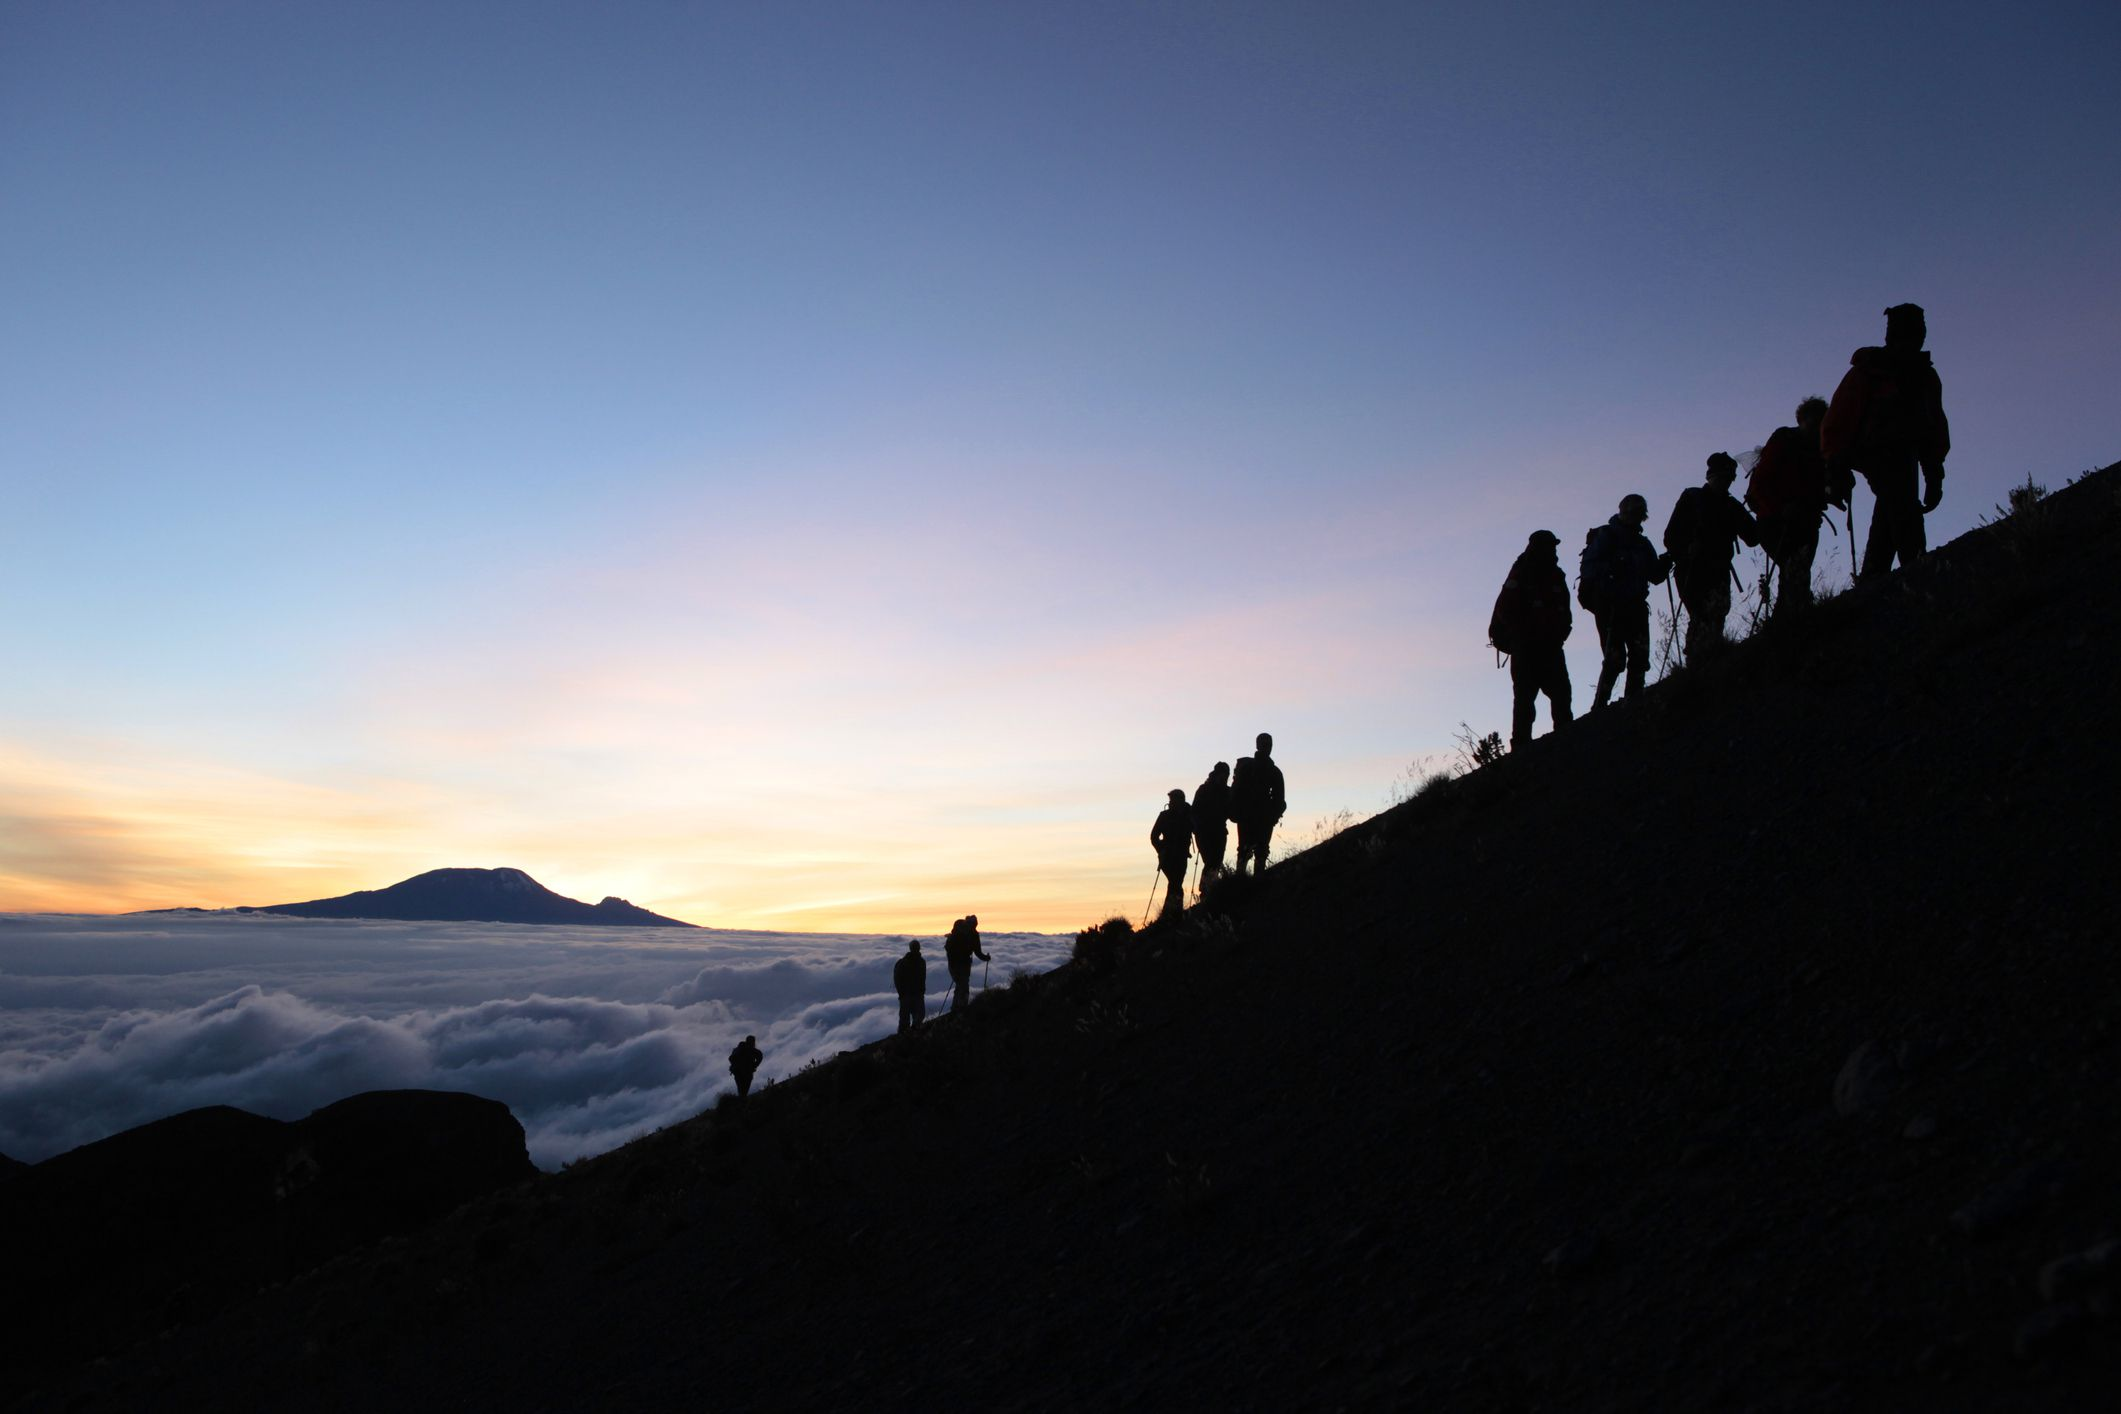 Hikers climbing Mount Meru with Mount Kilimanjaro in the background